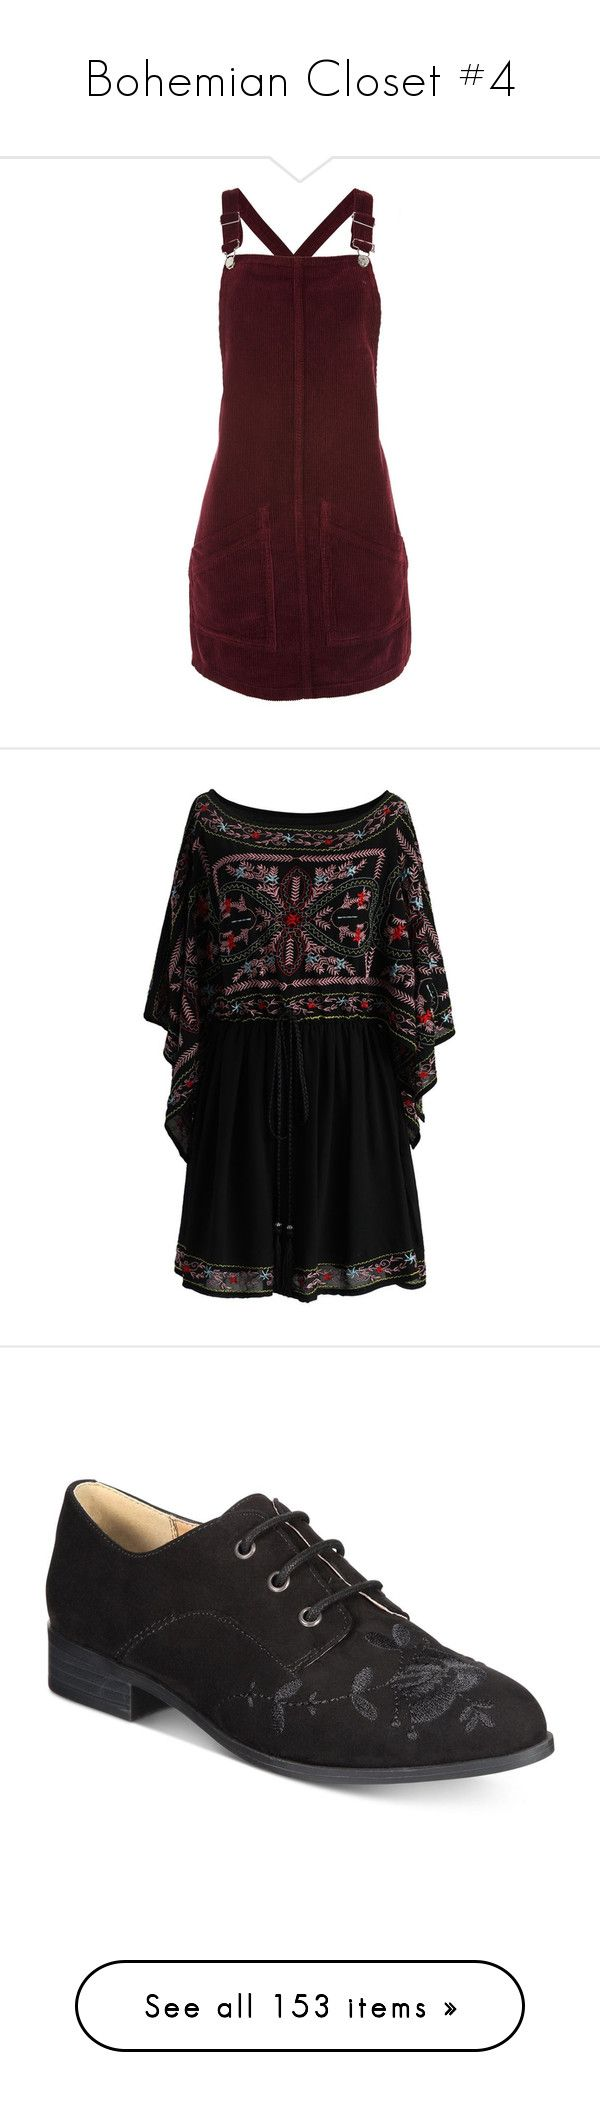 """Bohemian Closet #4"" by heisenberg44 ❤ liked on Polyvore featuring dresses, burgundy, red dress, petite red dress, cord dress, cord pinafore dress, burgundy pinafore dress, boho, black and bohemian dresses"